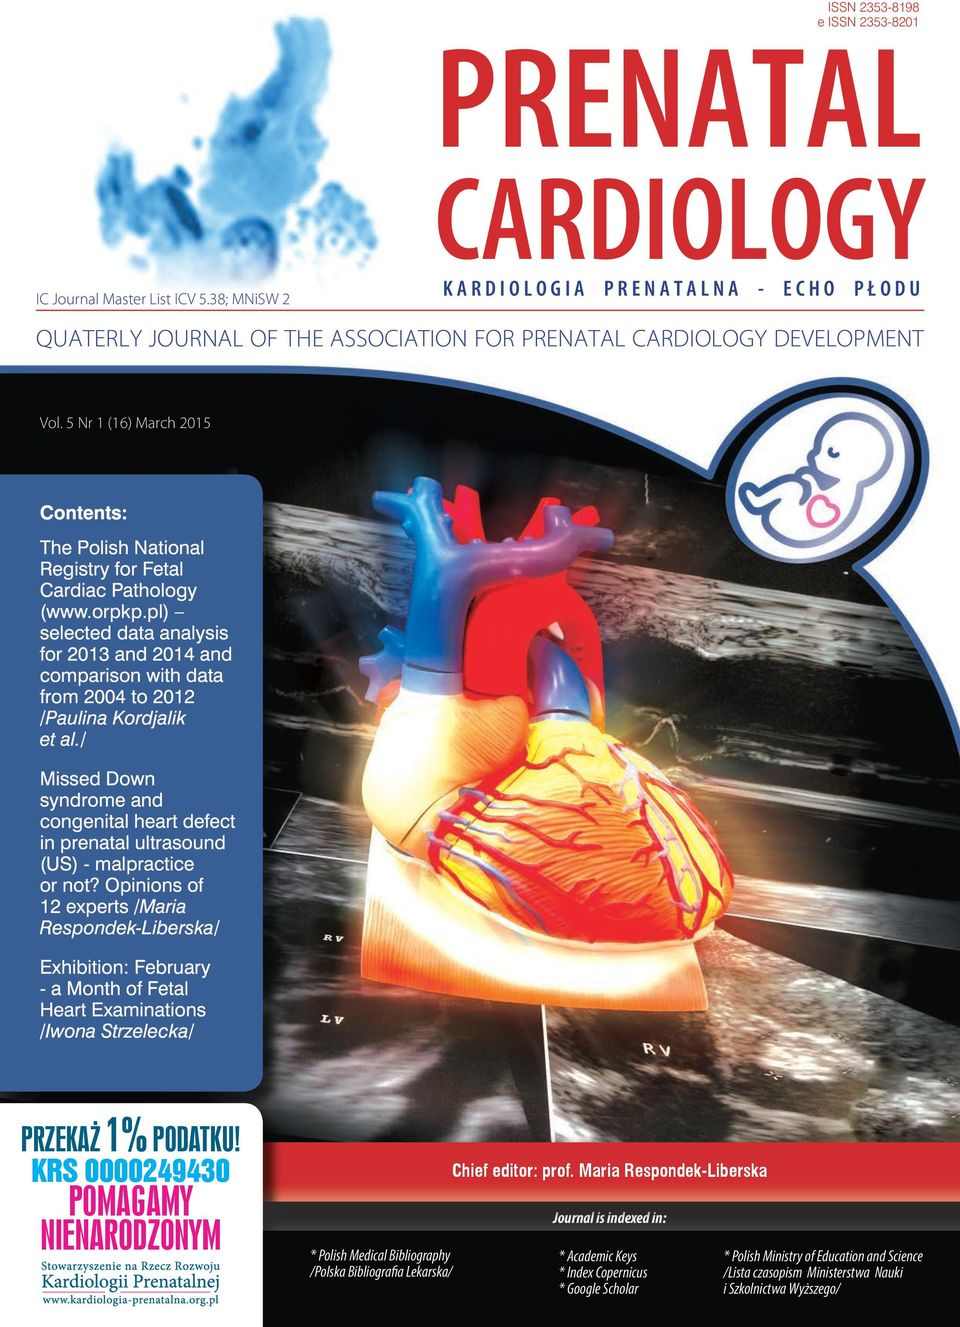 5 Nr 1 (16) March 2015 Contents: The Polish National Registry for Fetal Cardiac Pathology (www.orpkp.